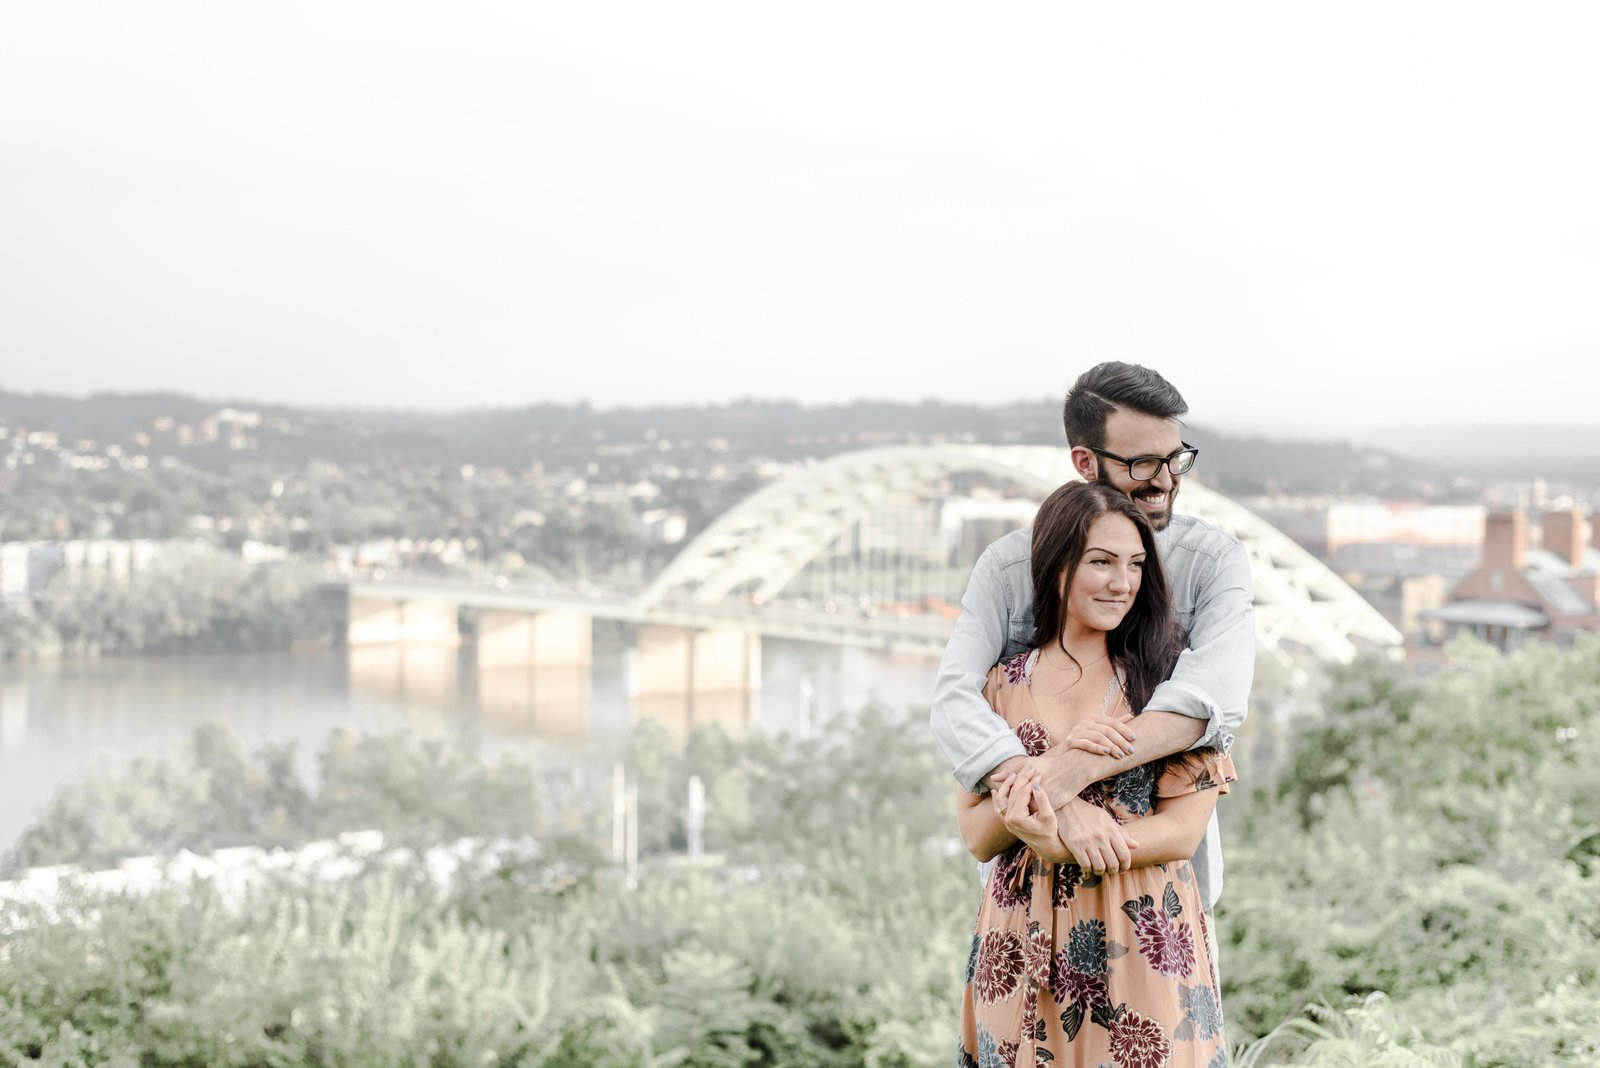 Cassidy_Alane_Photography-Zjanya_Nikole_&_Sam-Eden_Park_&_Mt_Adams_Cincinnati-Ohio_Engagement_Photographer-07